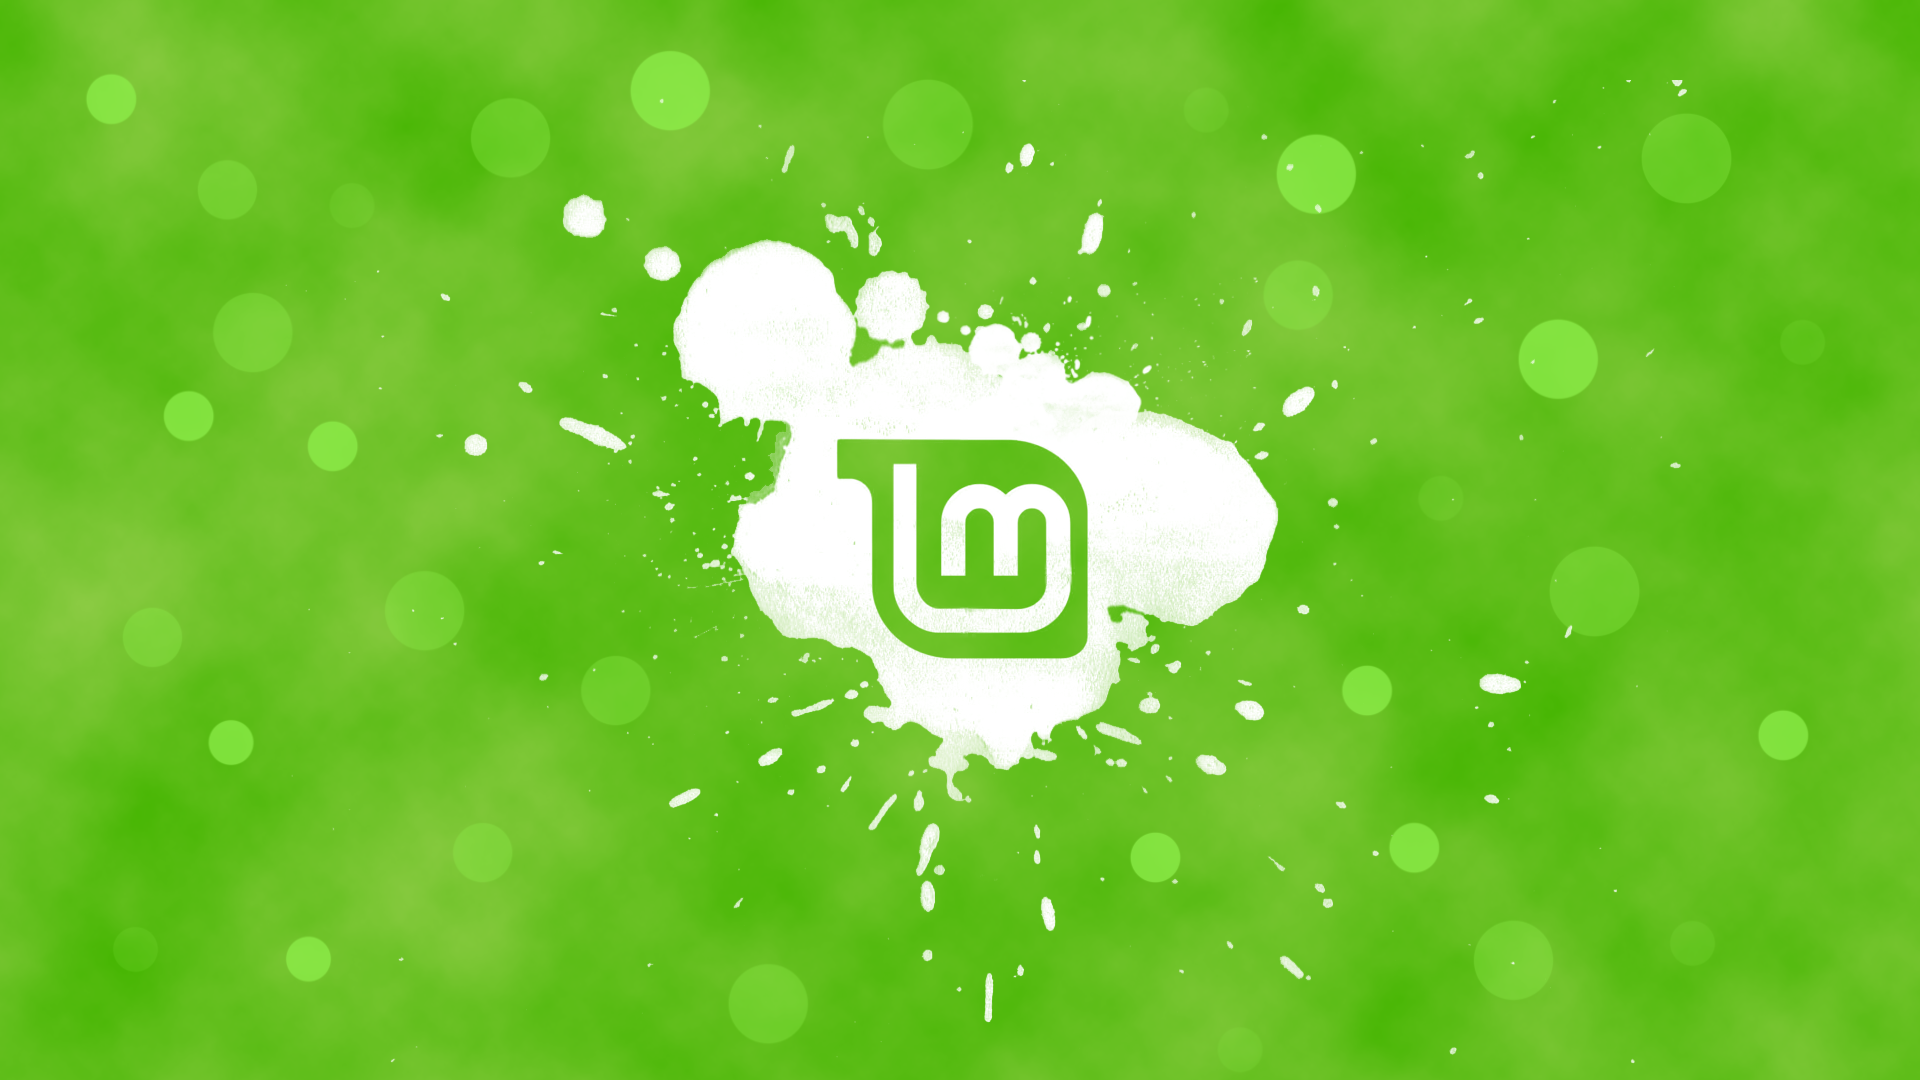 wallpaper other wallpaper from mu linux distro of choice linux mint 1920x1080